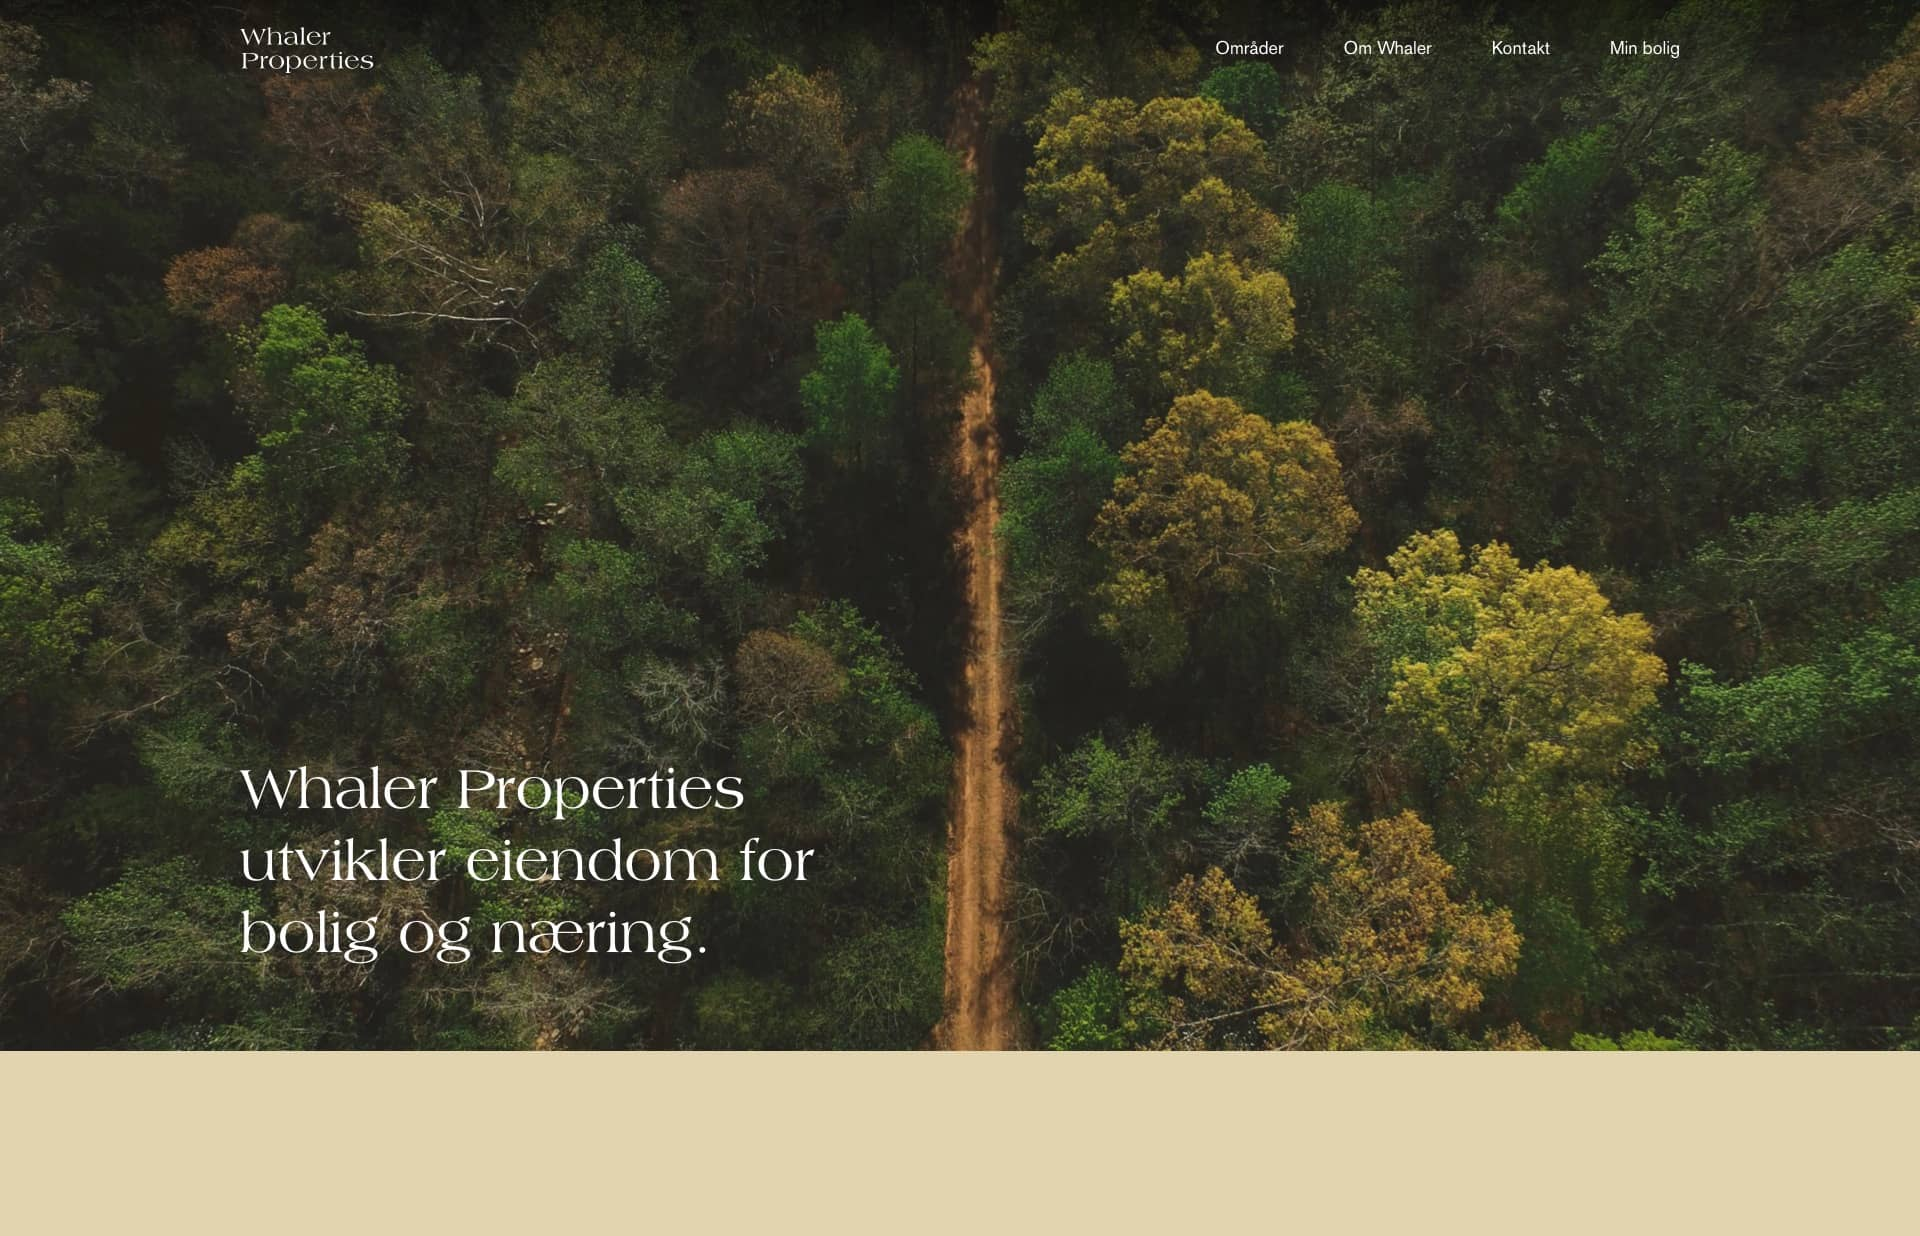 Screenshot of the website Whaler Properties, featured on The Gallery, a curated collection of minimal websites